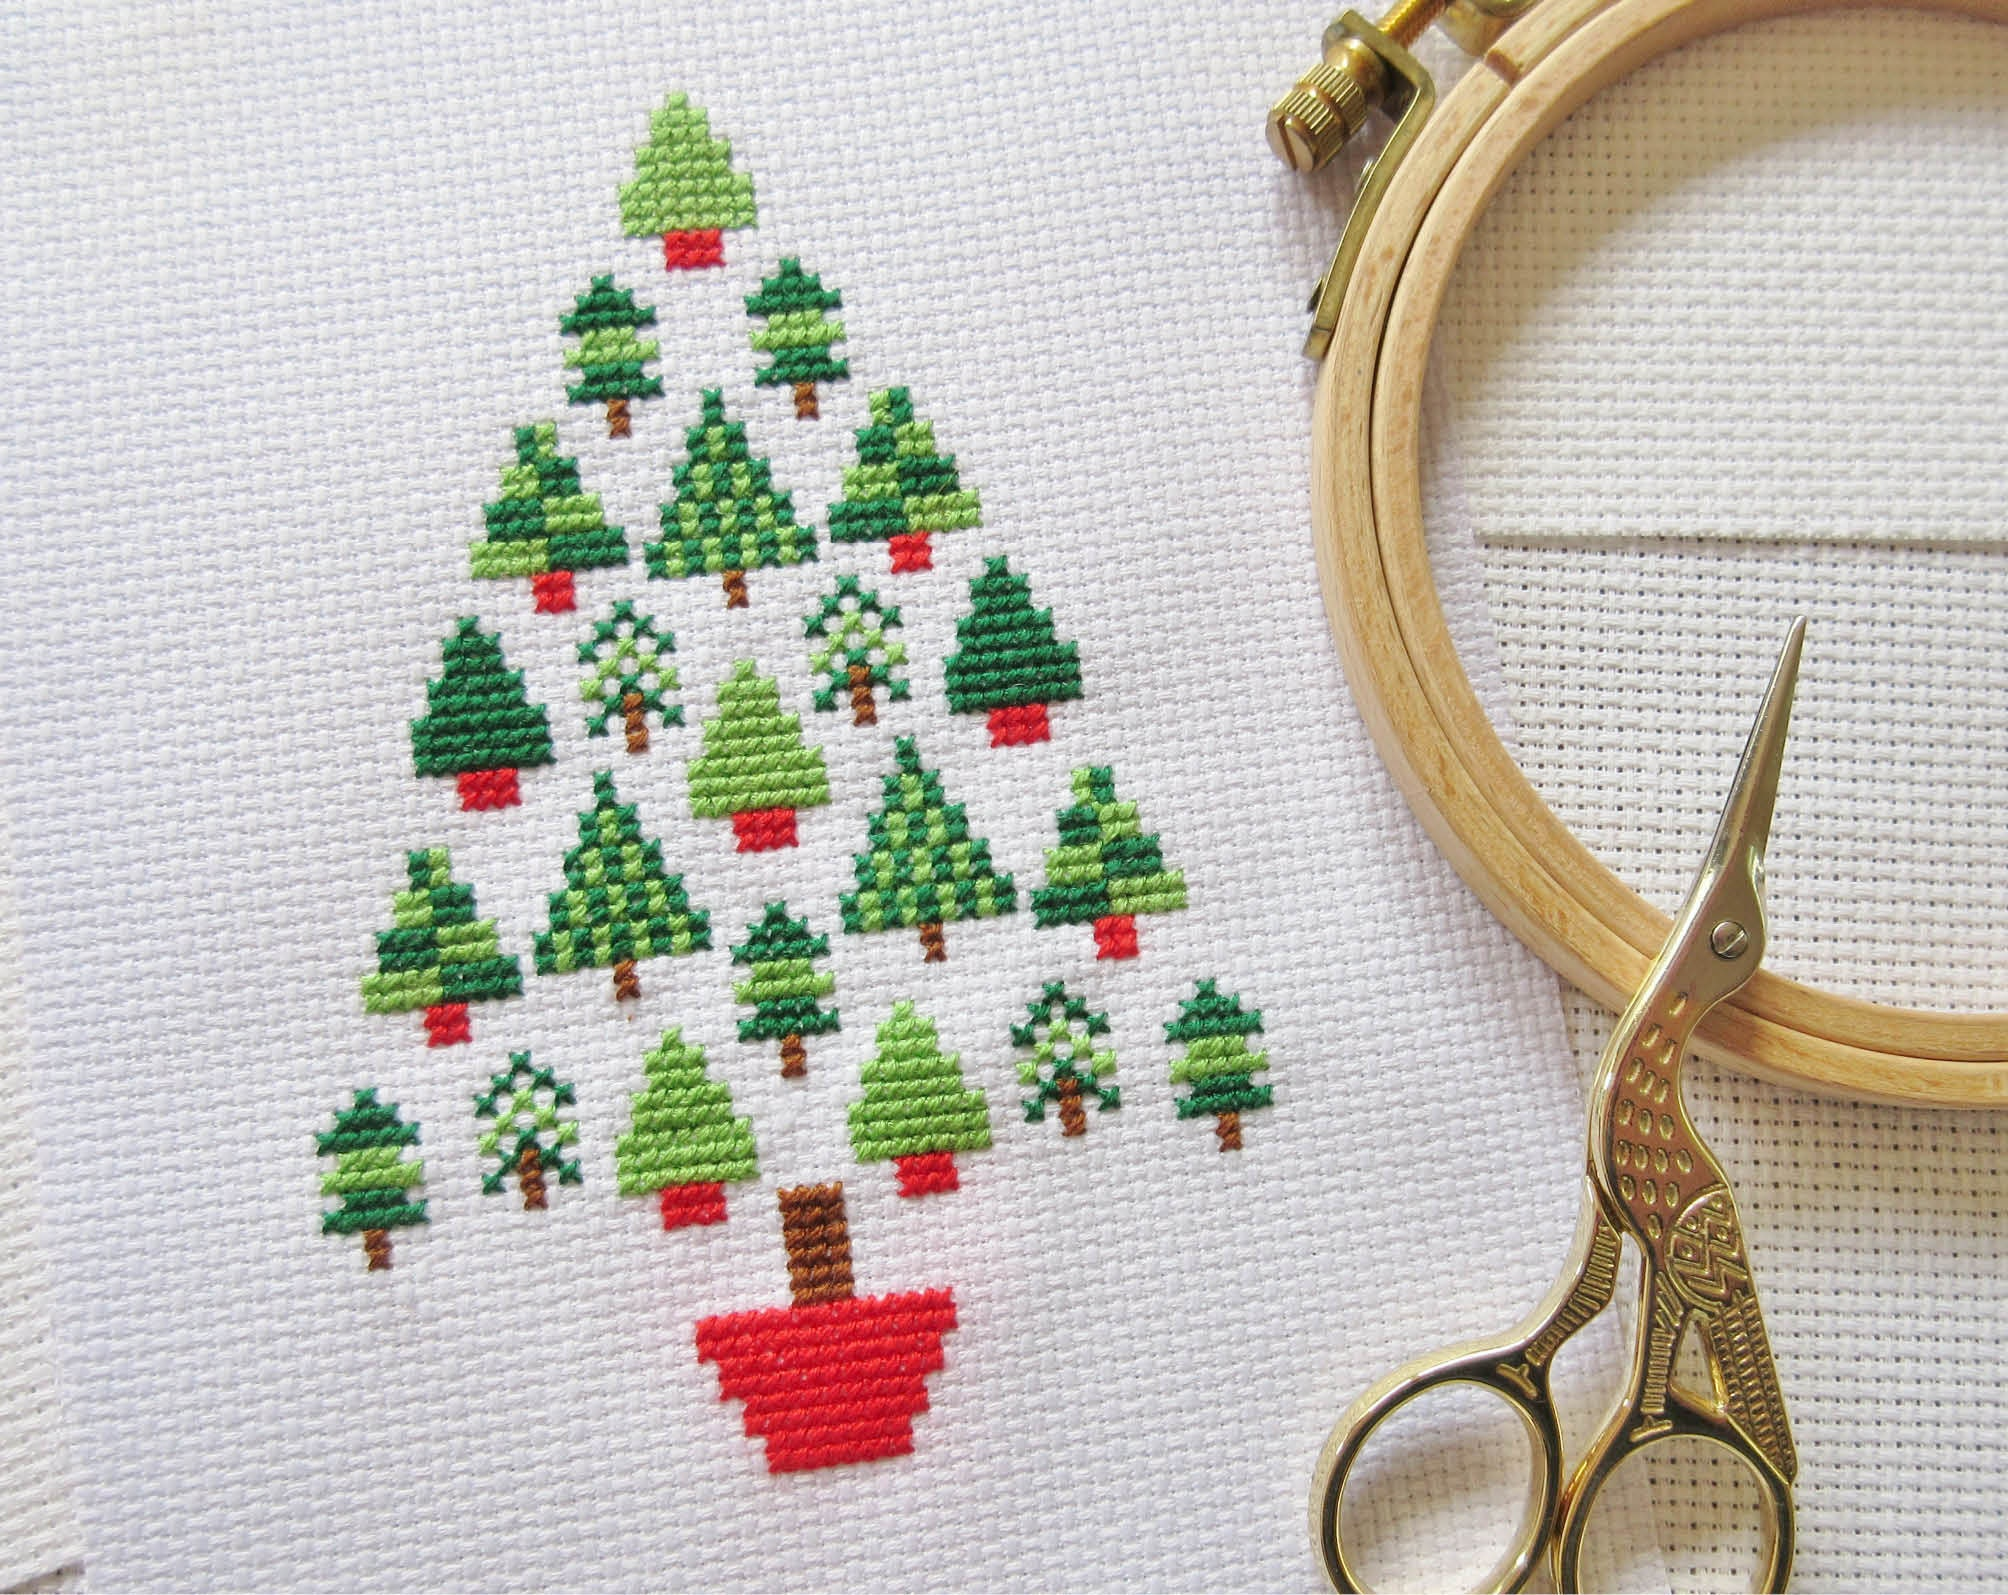 This is an image of Unusual Free Printable Christmas Ornament Cross Stitch Patterns